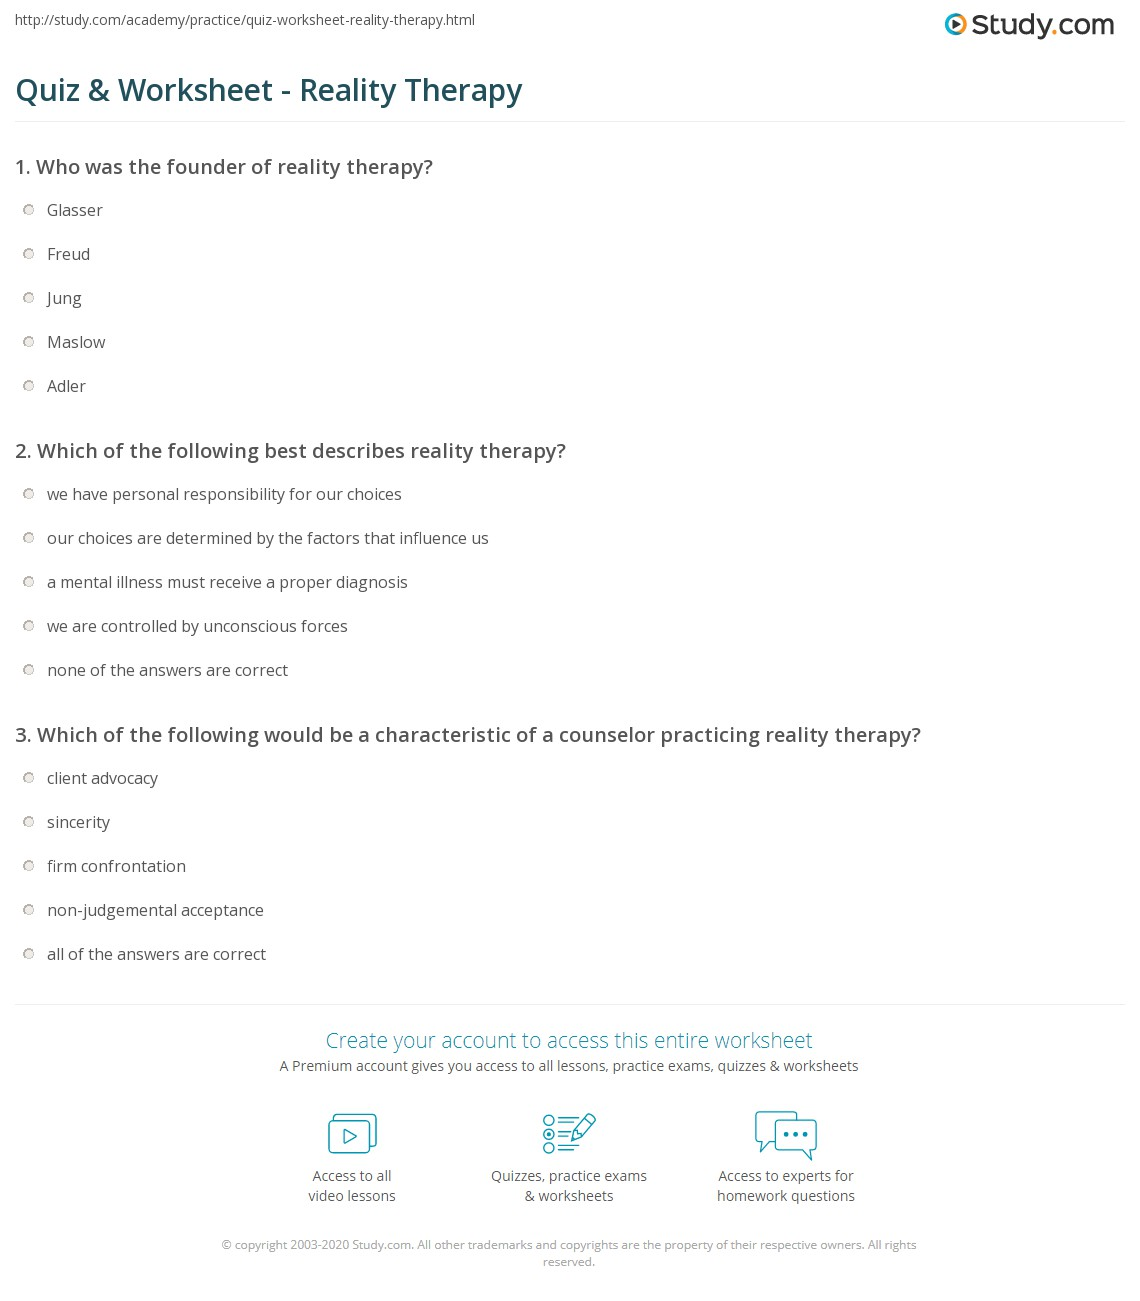 Worksheets Reality Therapy Worksheets quiz worksheet reality therapy study com print techniques goals limitations worksheet